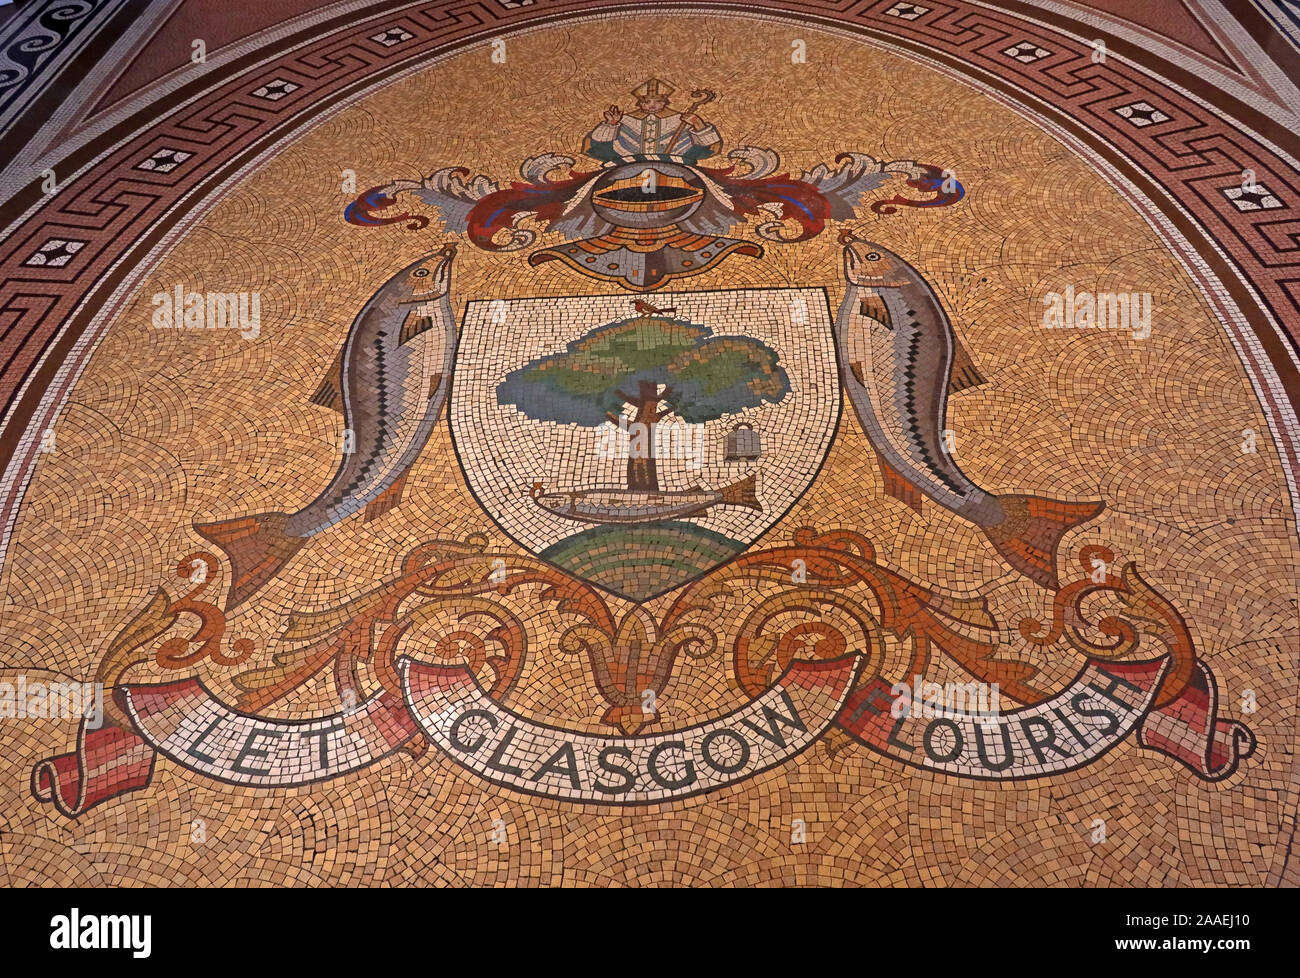 Let Glasgow Flourish Mosaic, The Glasgow coat of arms: bird, tree, bell and fish, from City Chambers, George Square, Scotland, UK, G2 1DU Stock Photo